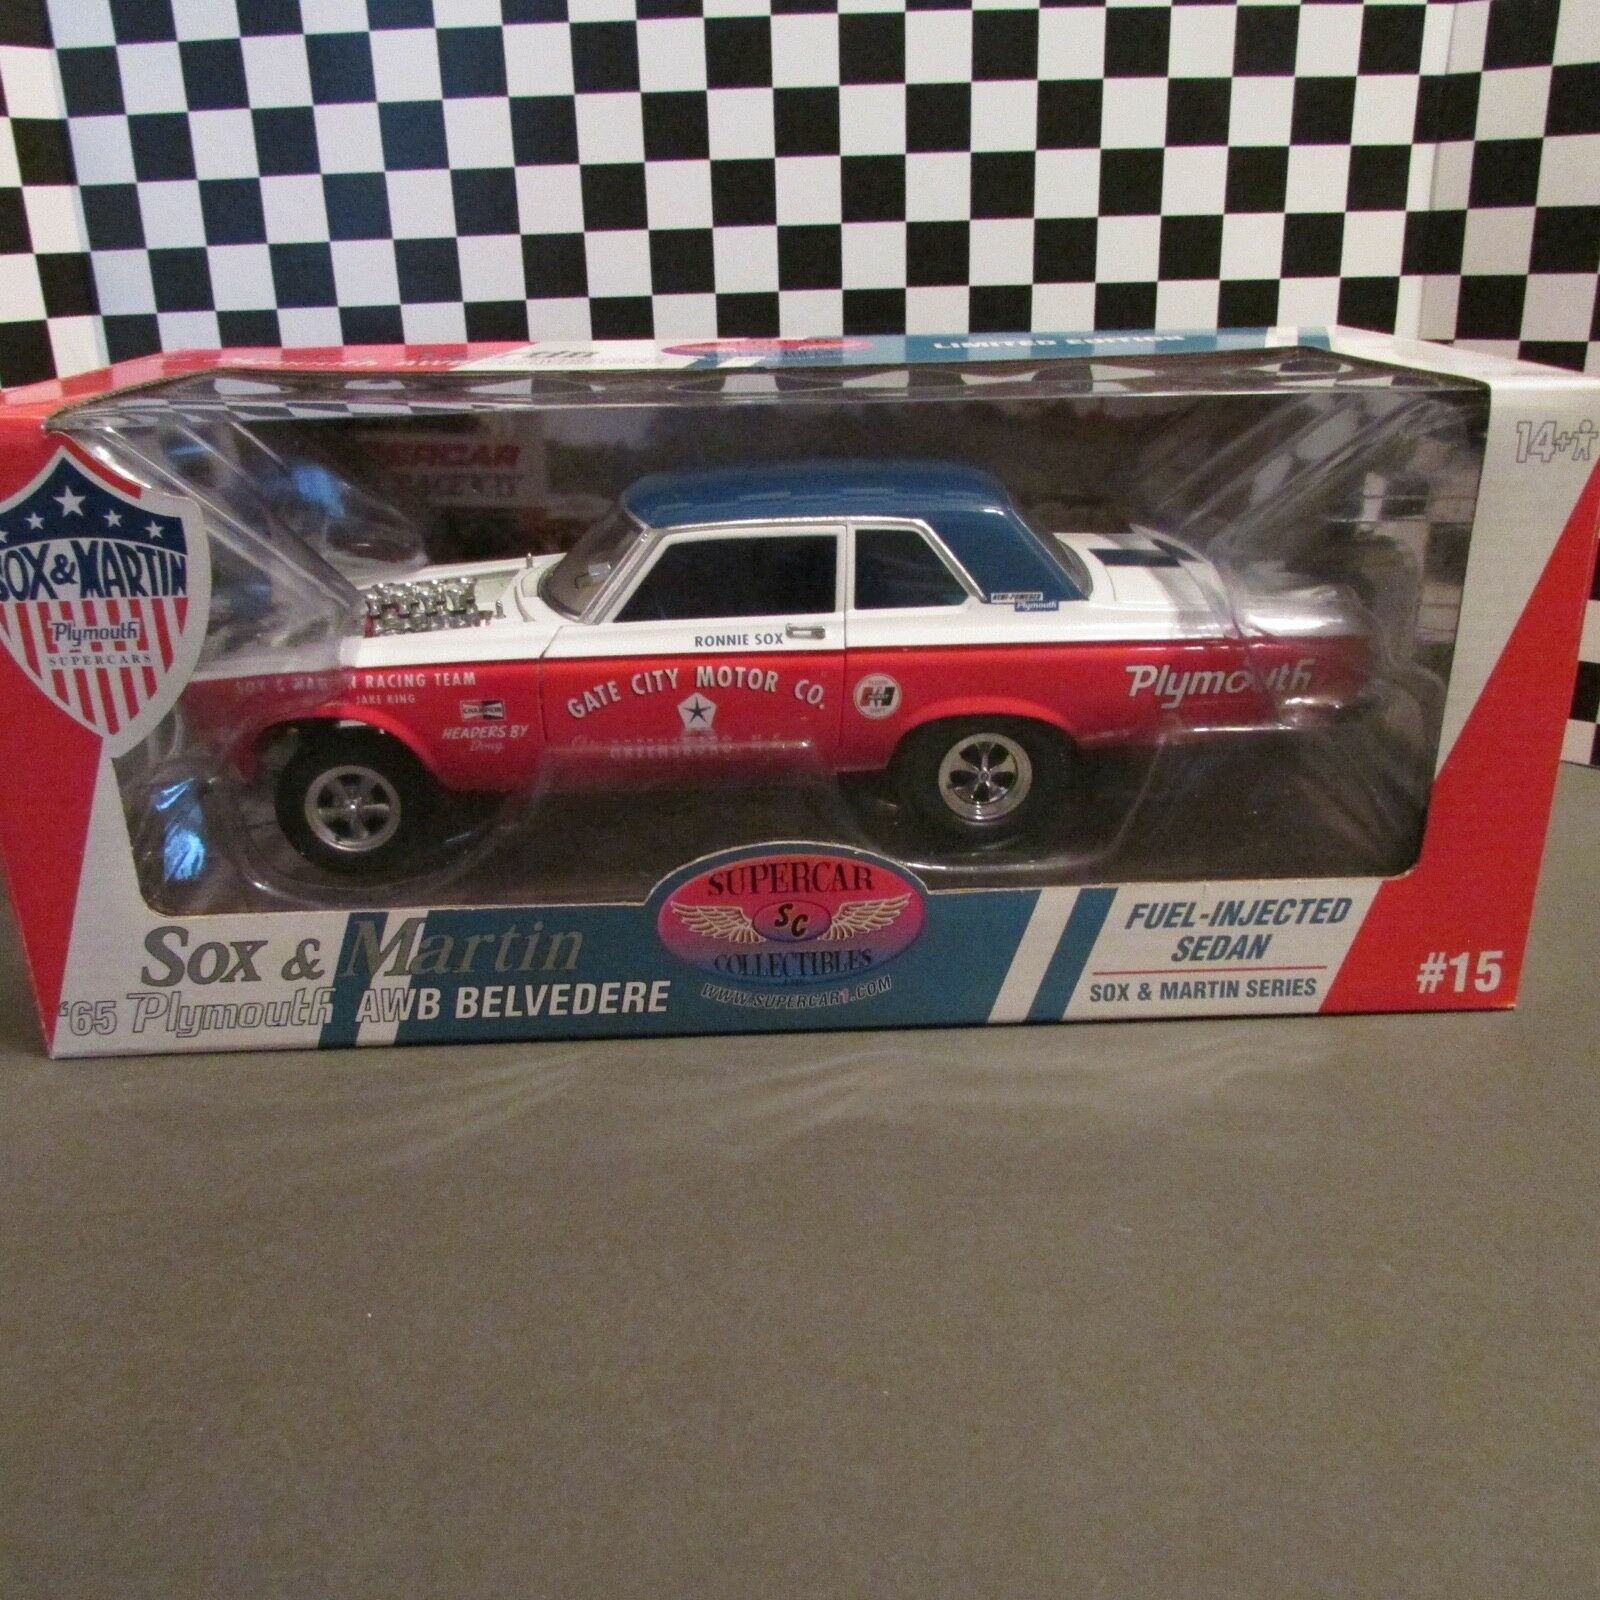 DCP Supercar,1965 Plymouth Belvedere, Sox & Martin'1 18 sc. model, AWB,Issue  15